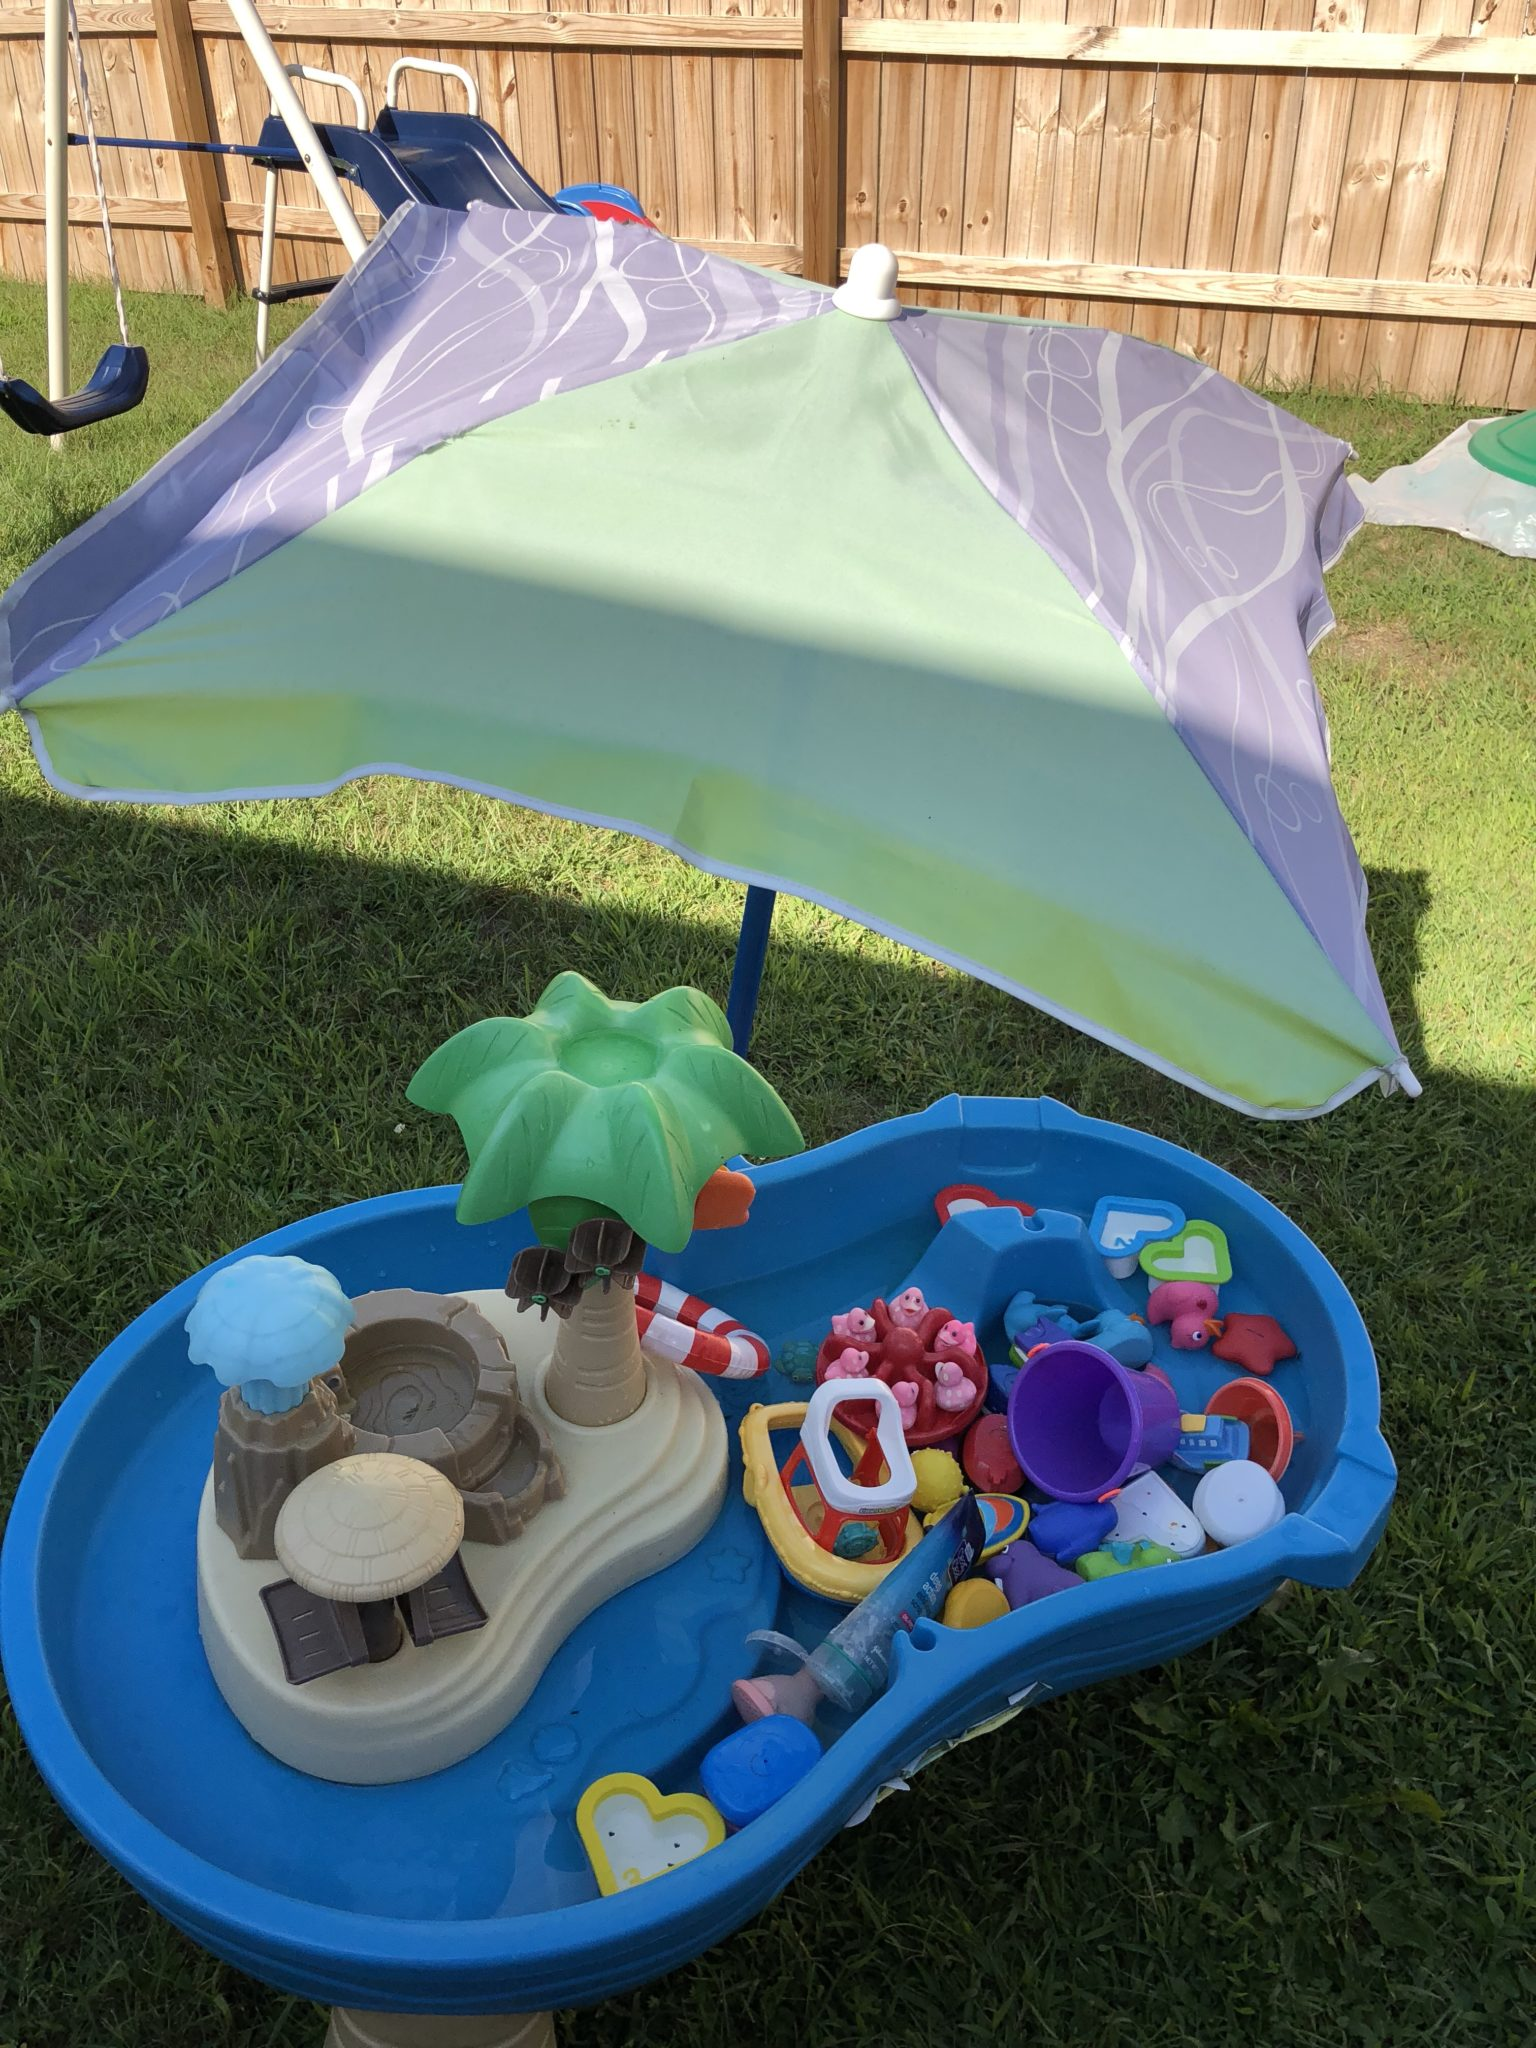 Umbrella over water table.